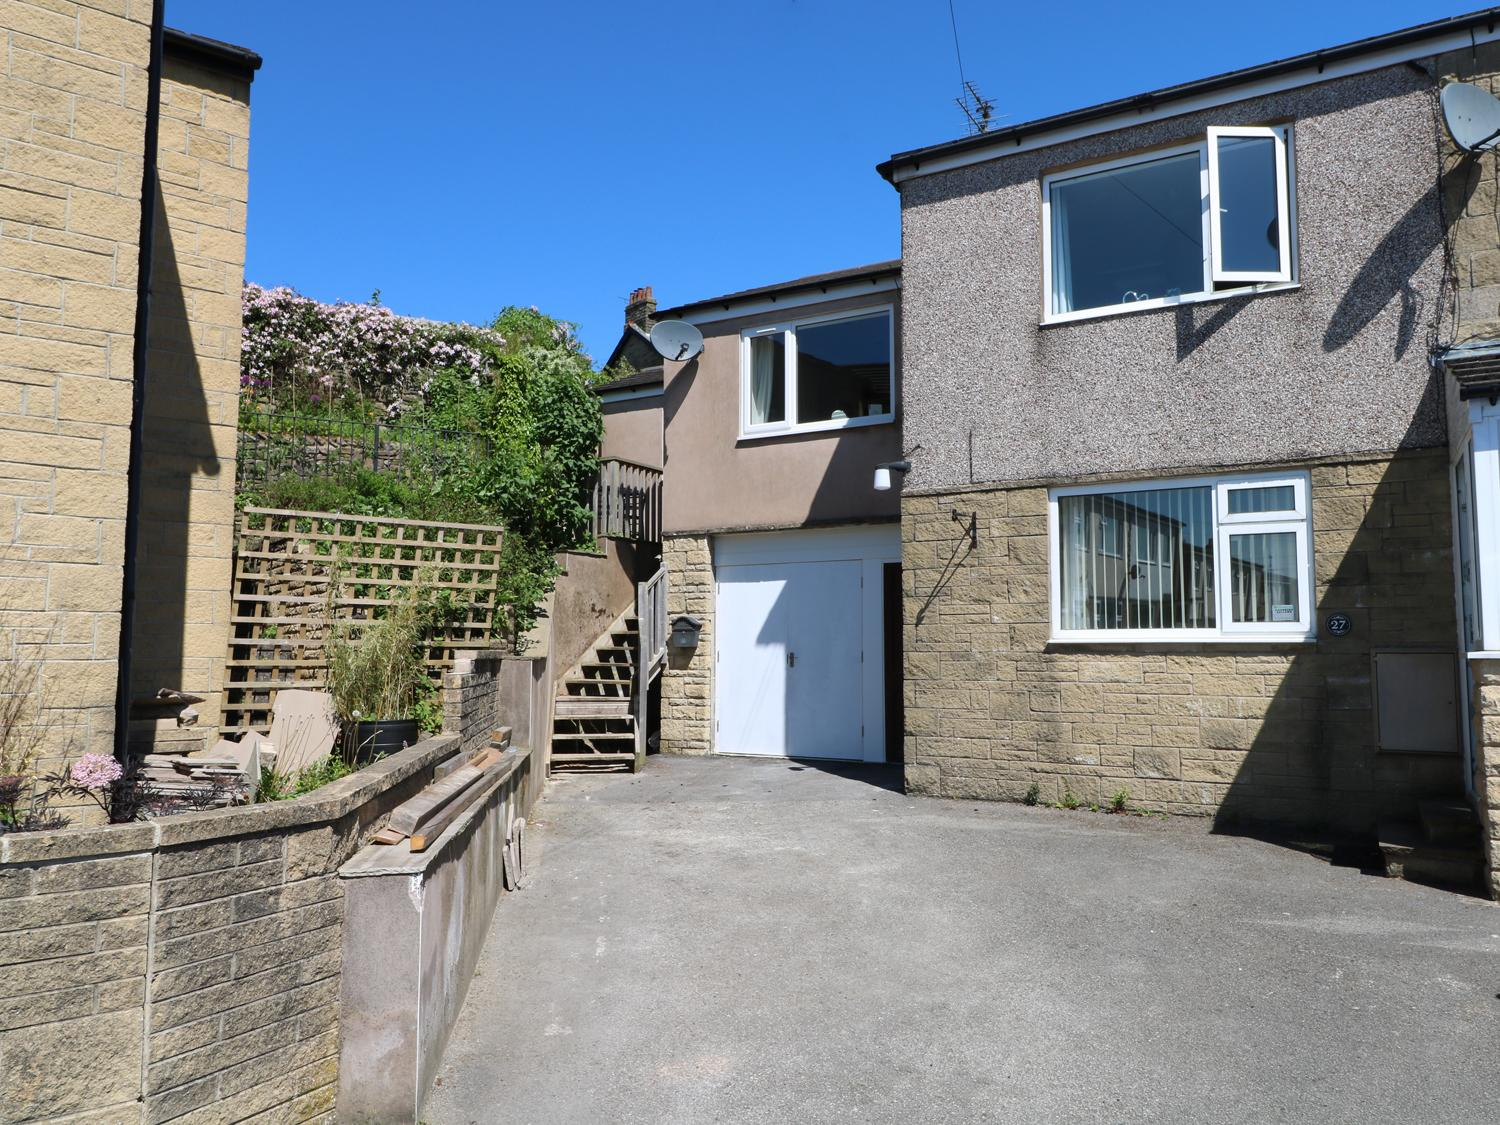 Holiday Cottage Reviews for 27 Longdale Avenue - Holiday Cottage in Settle, North Yorkshire